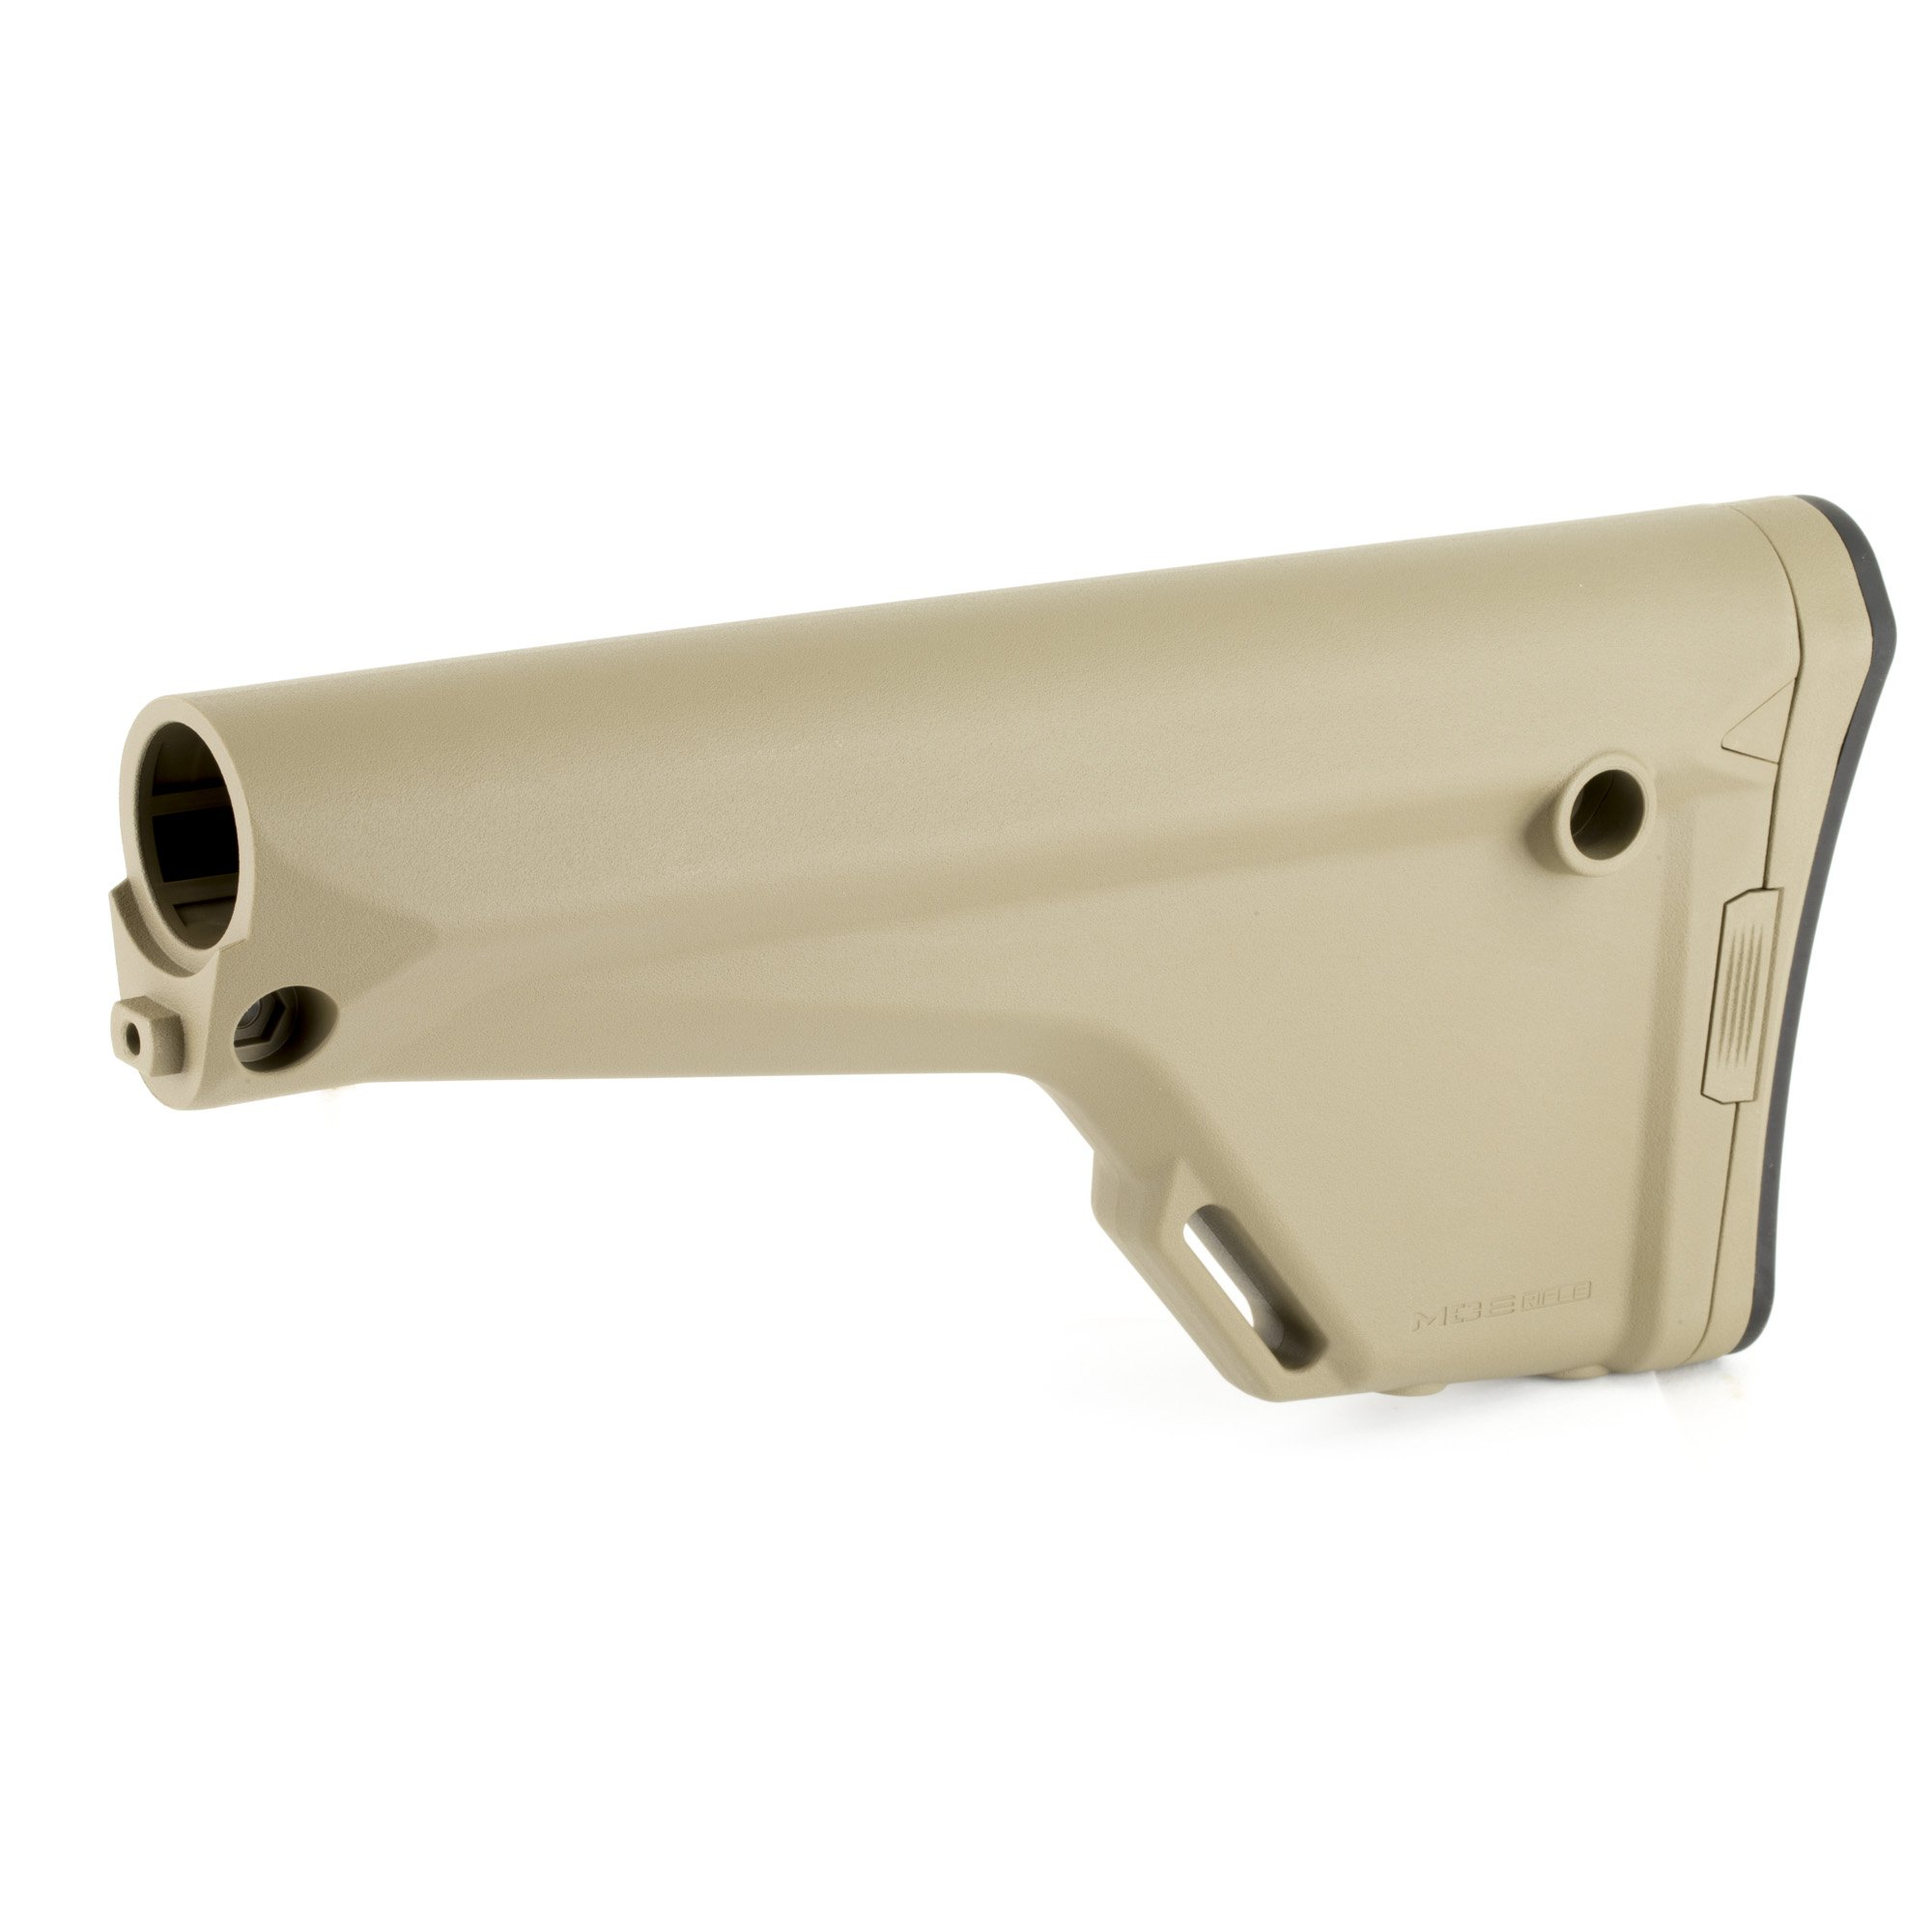 MAG404 FDE Fixed Rifle Stock